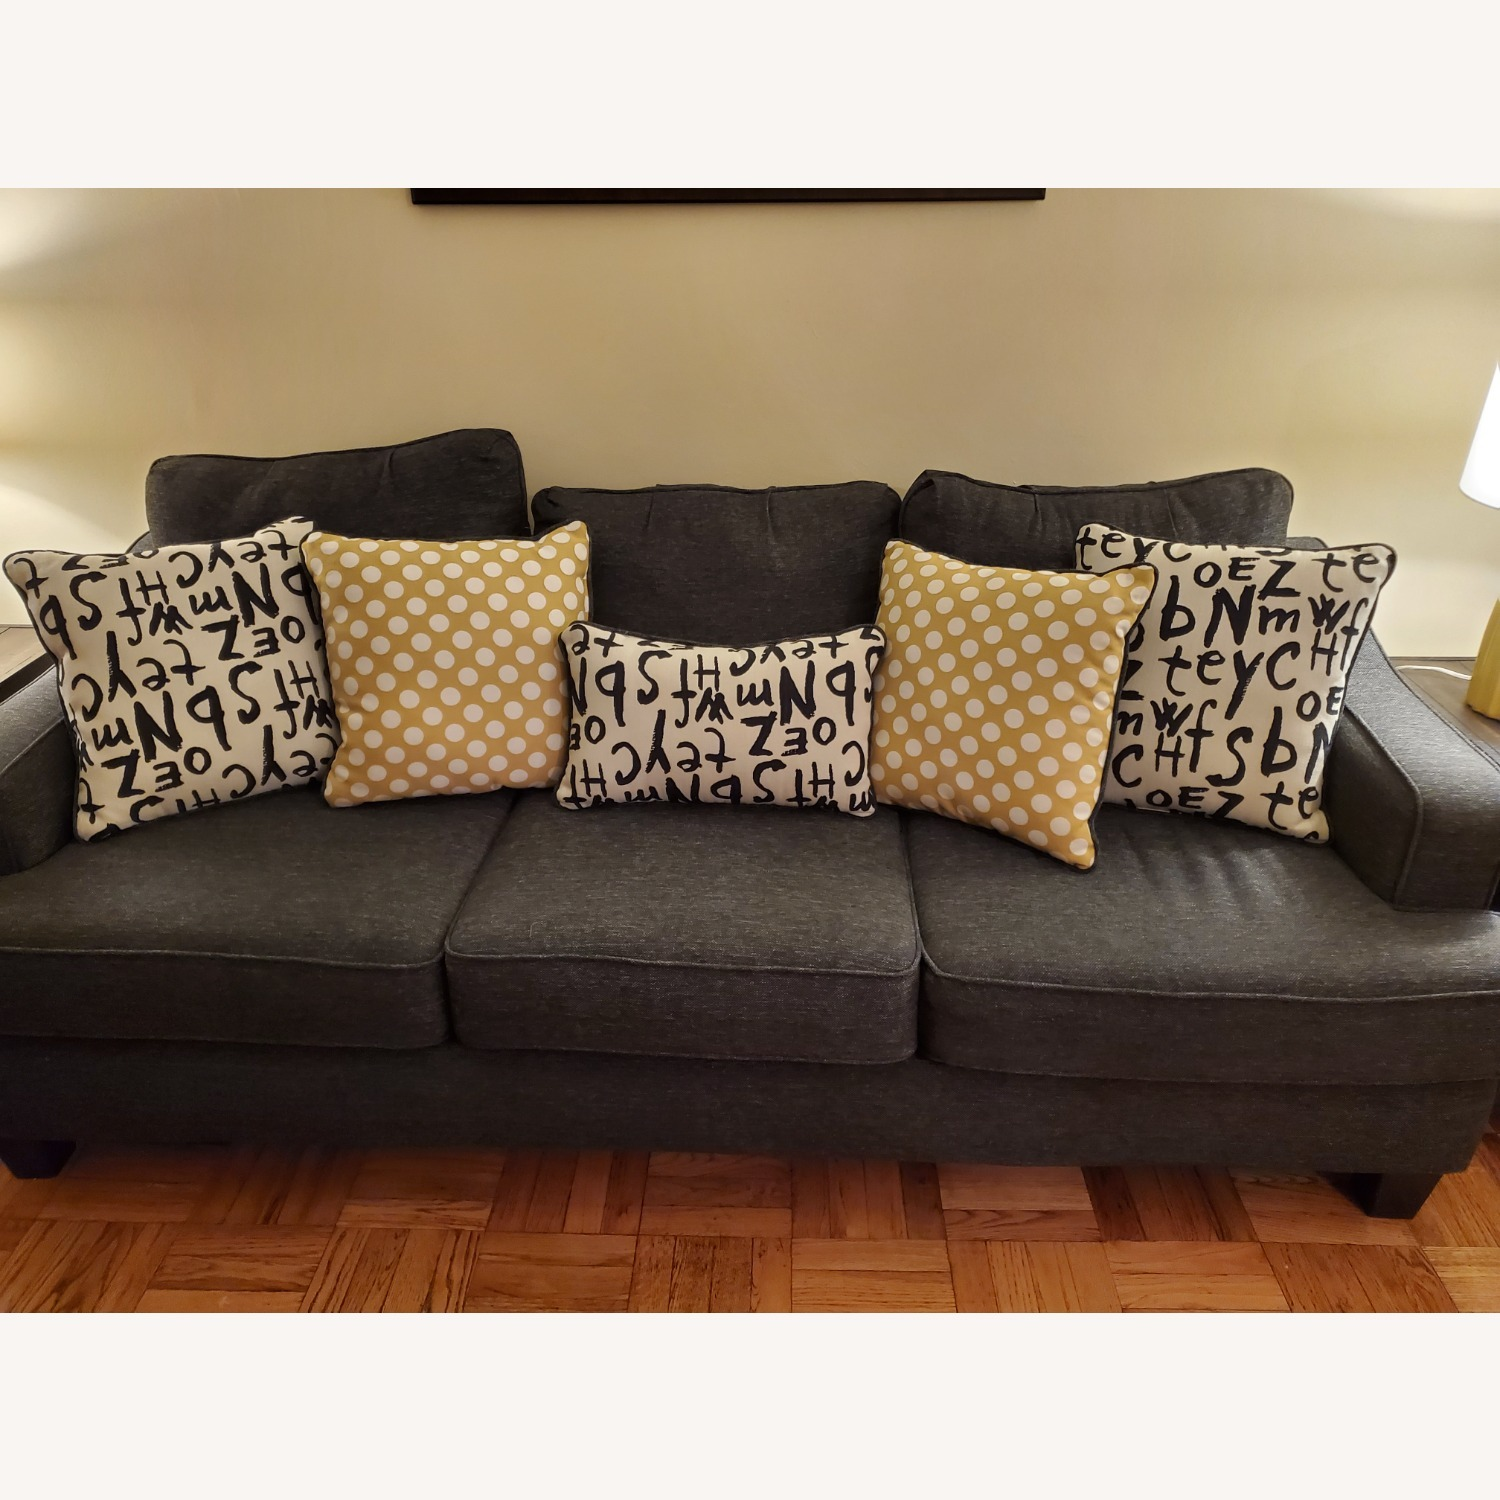 Raymour & Flanigan Grey Couch with Pillows - image-1